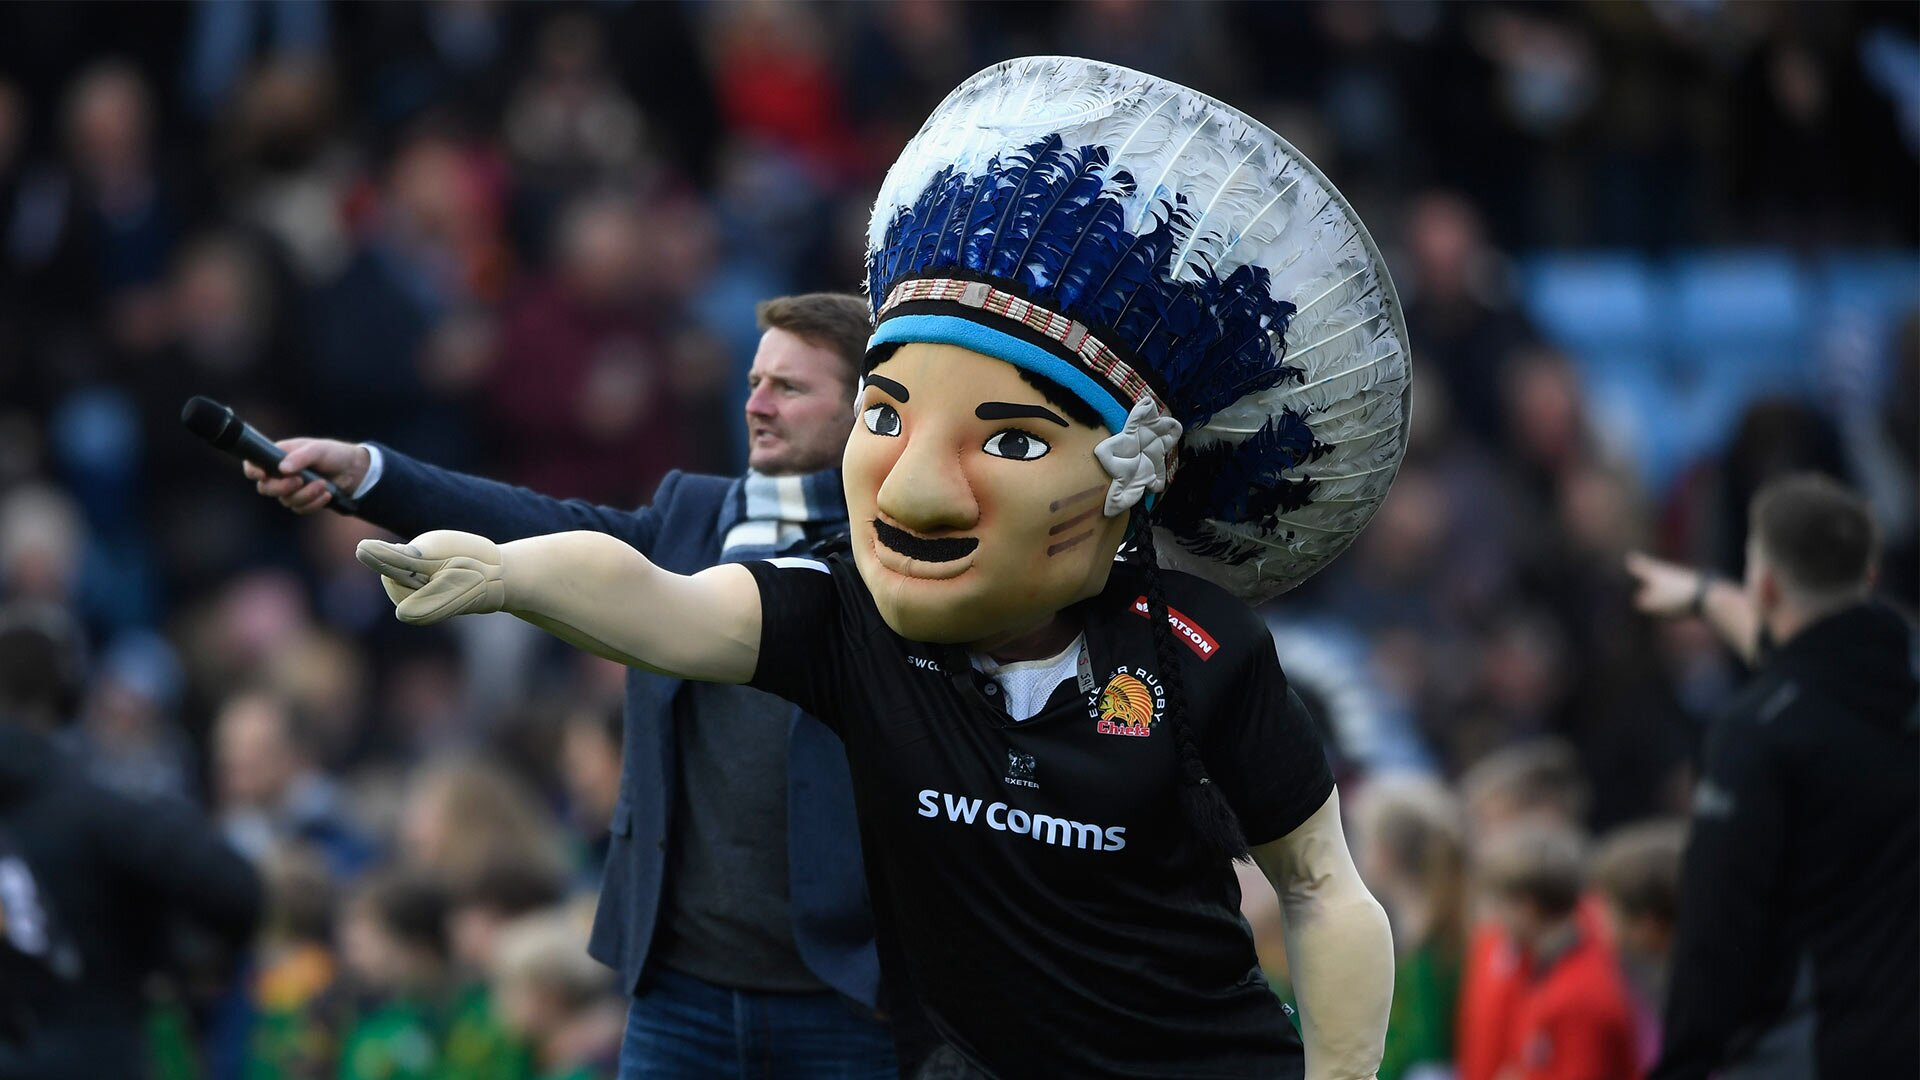 Calls for Exeter Chiefs to entirely alter branding in new development